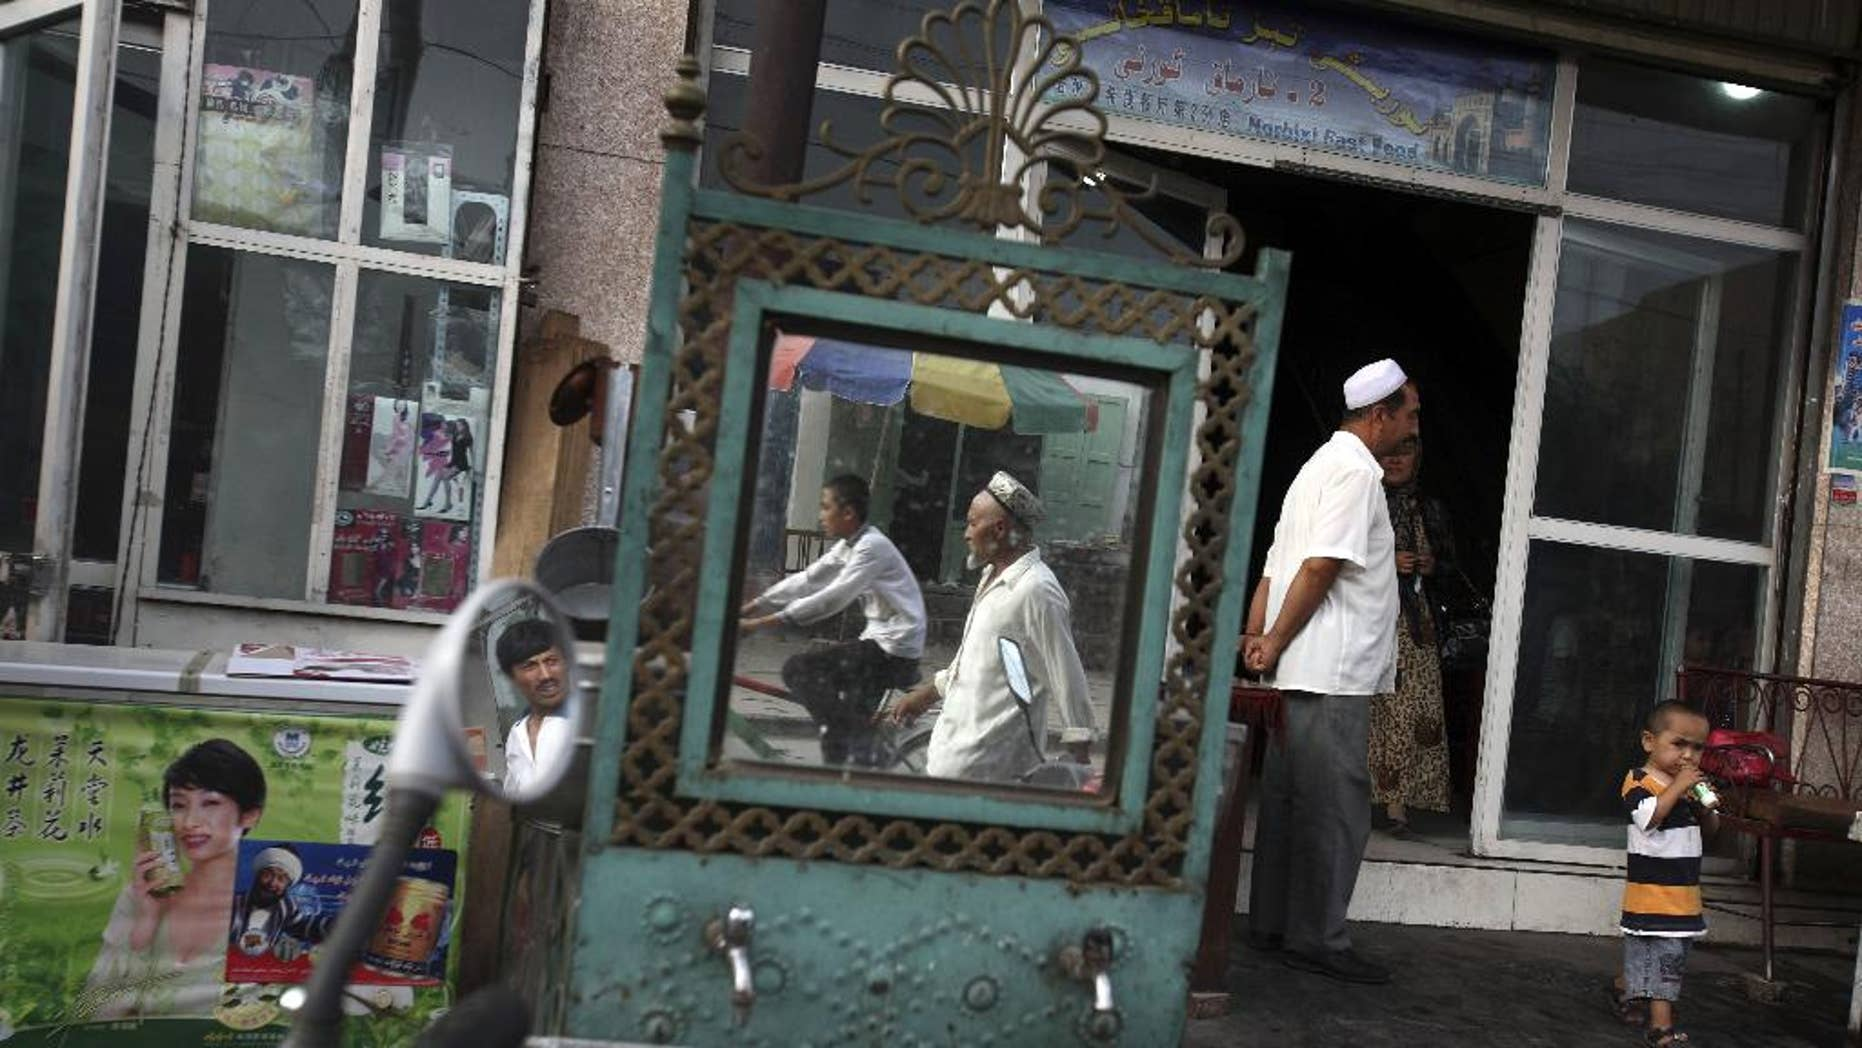 FILE -  In this Aug. 6, 2008, file photo, Uighurs are seen outside a restaurant in Kashgar in China's western Xinjiang province. Since 2015 militants belonging to the Uighur ethnic group native to the vast Xinjiang region in western China have shown signs of becoming a force in Islamic extremism globally, a development that is reshaping both the ground war in Syria and Chinese foreign policy. (AP Photo/Ng Han Guan, File)